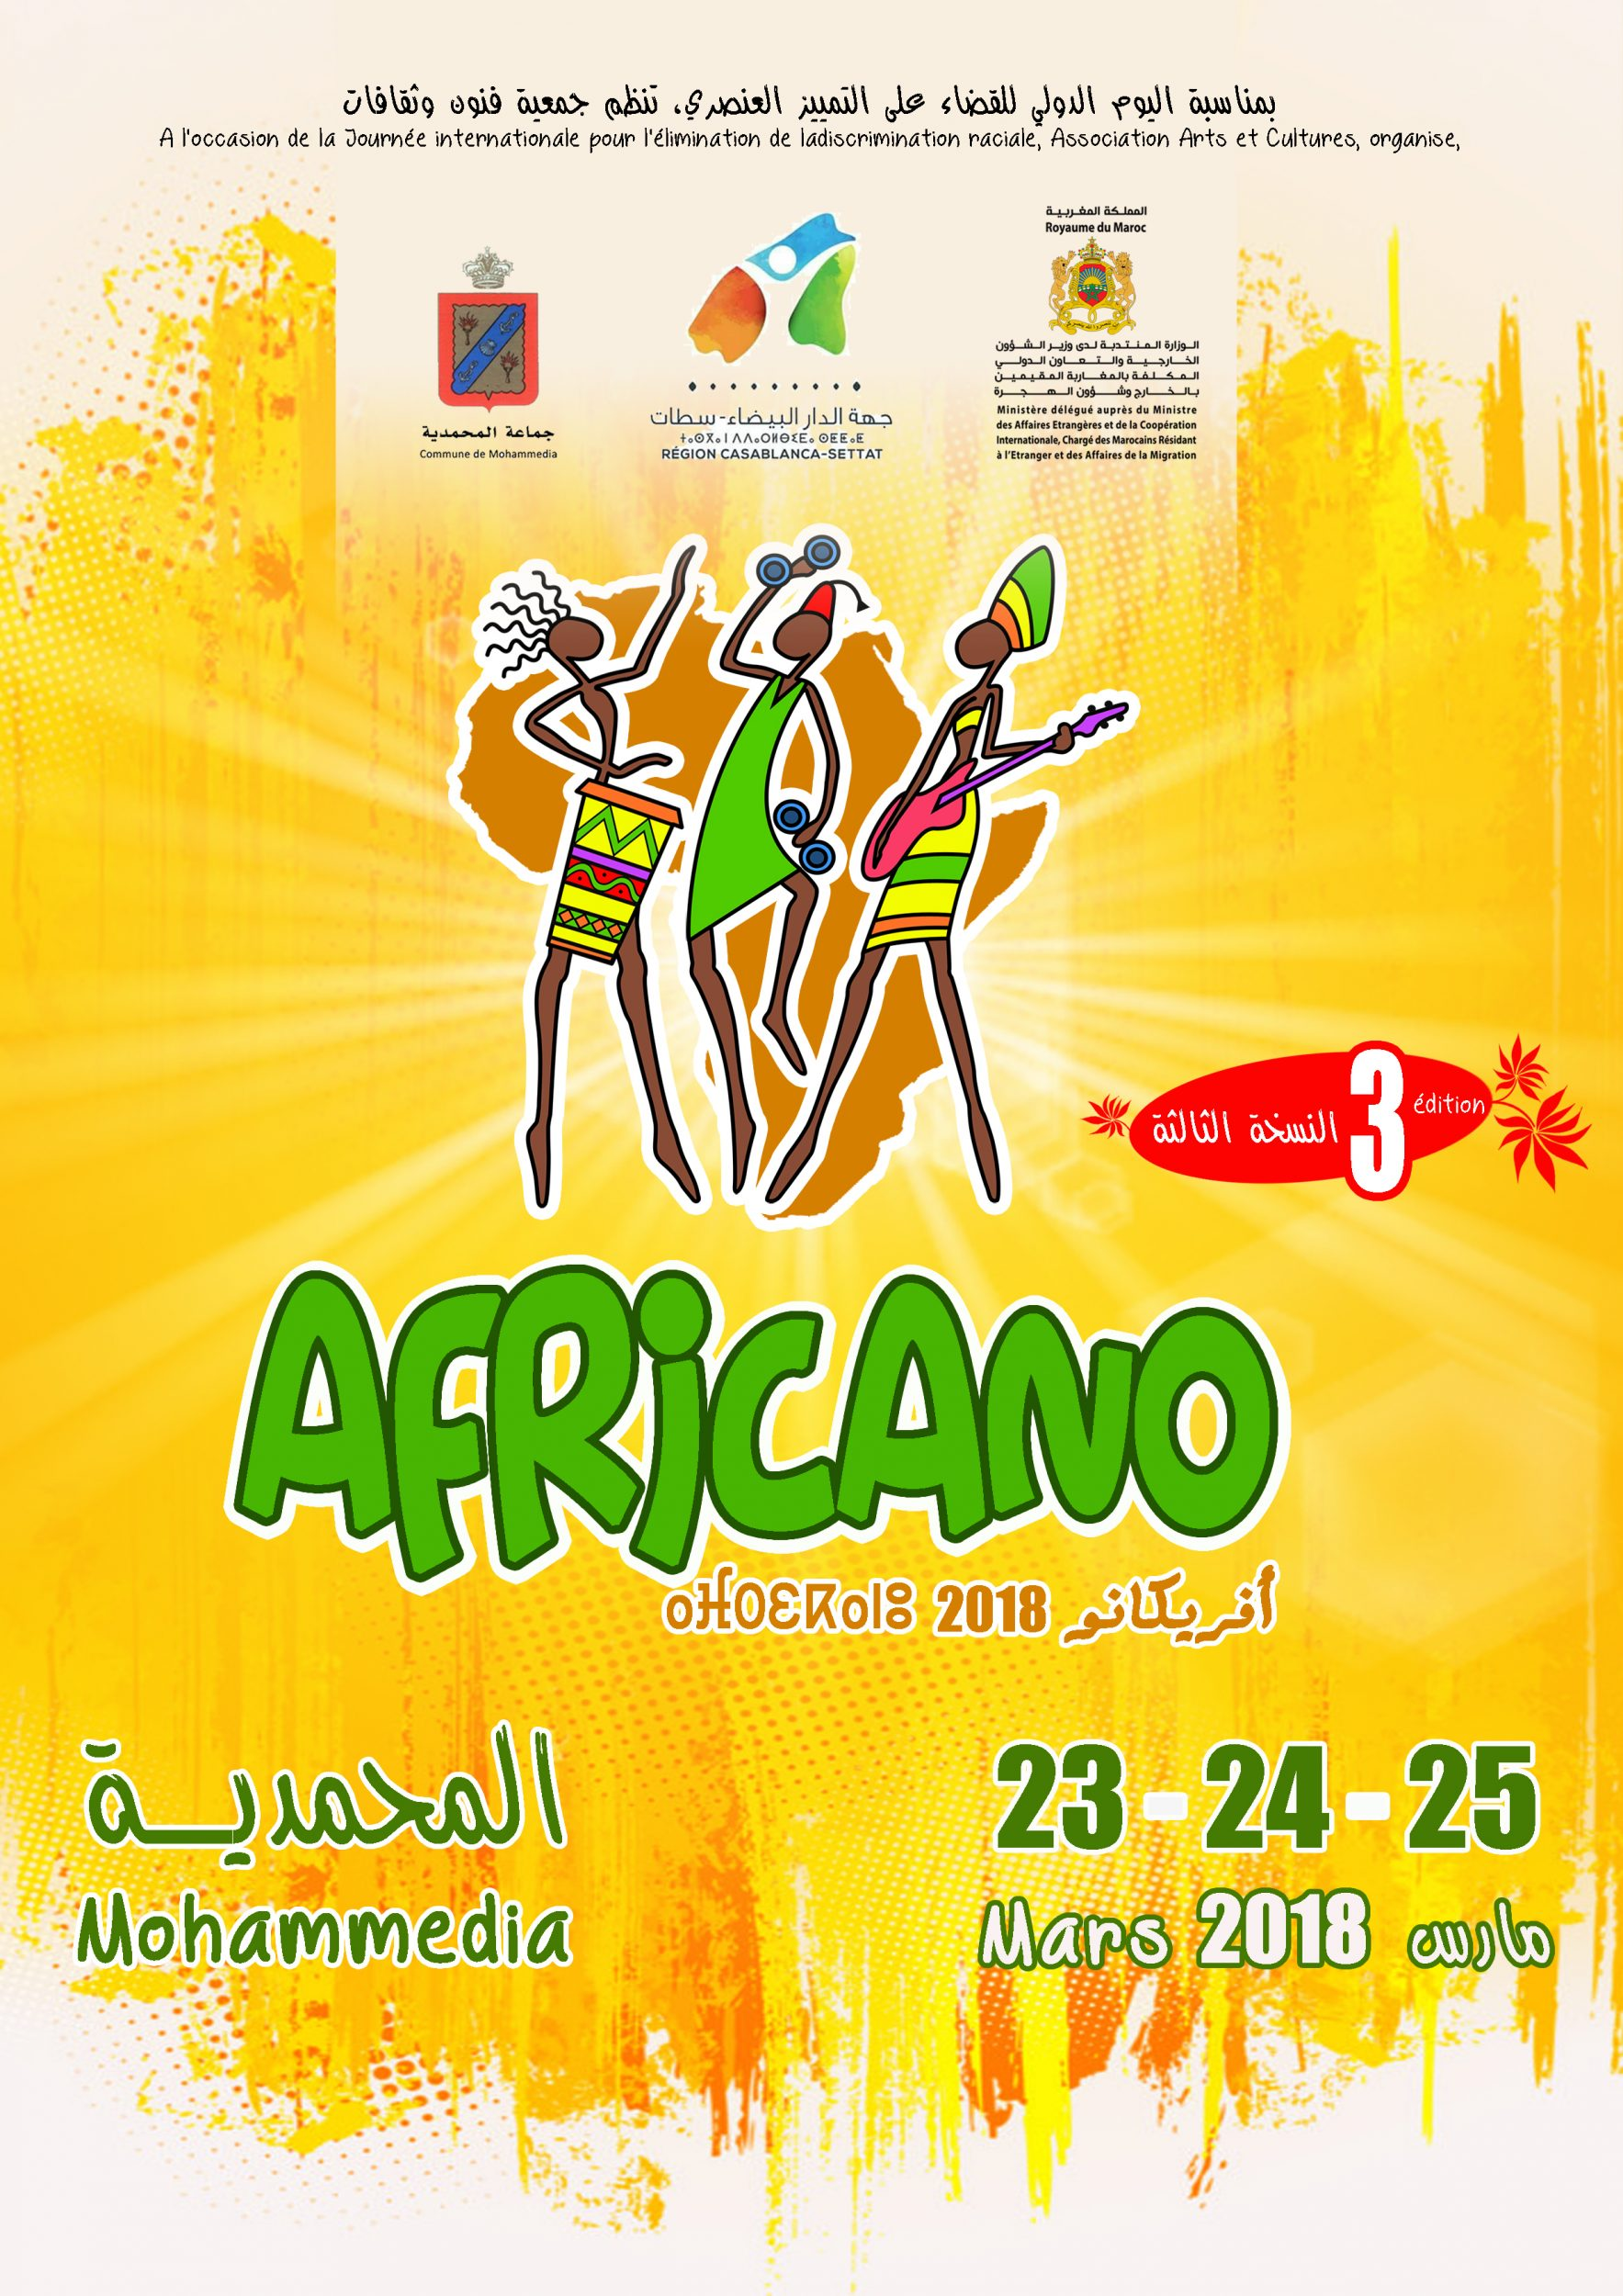 You are currently viewing Maroc : Festival Africano du 23 au 25 Mars 2018